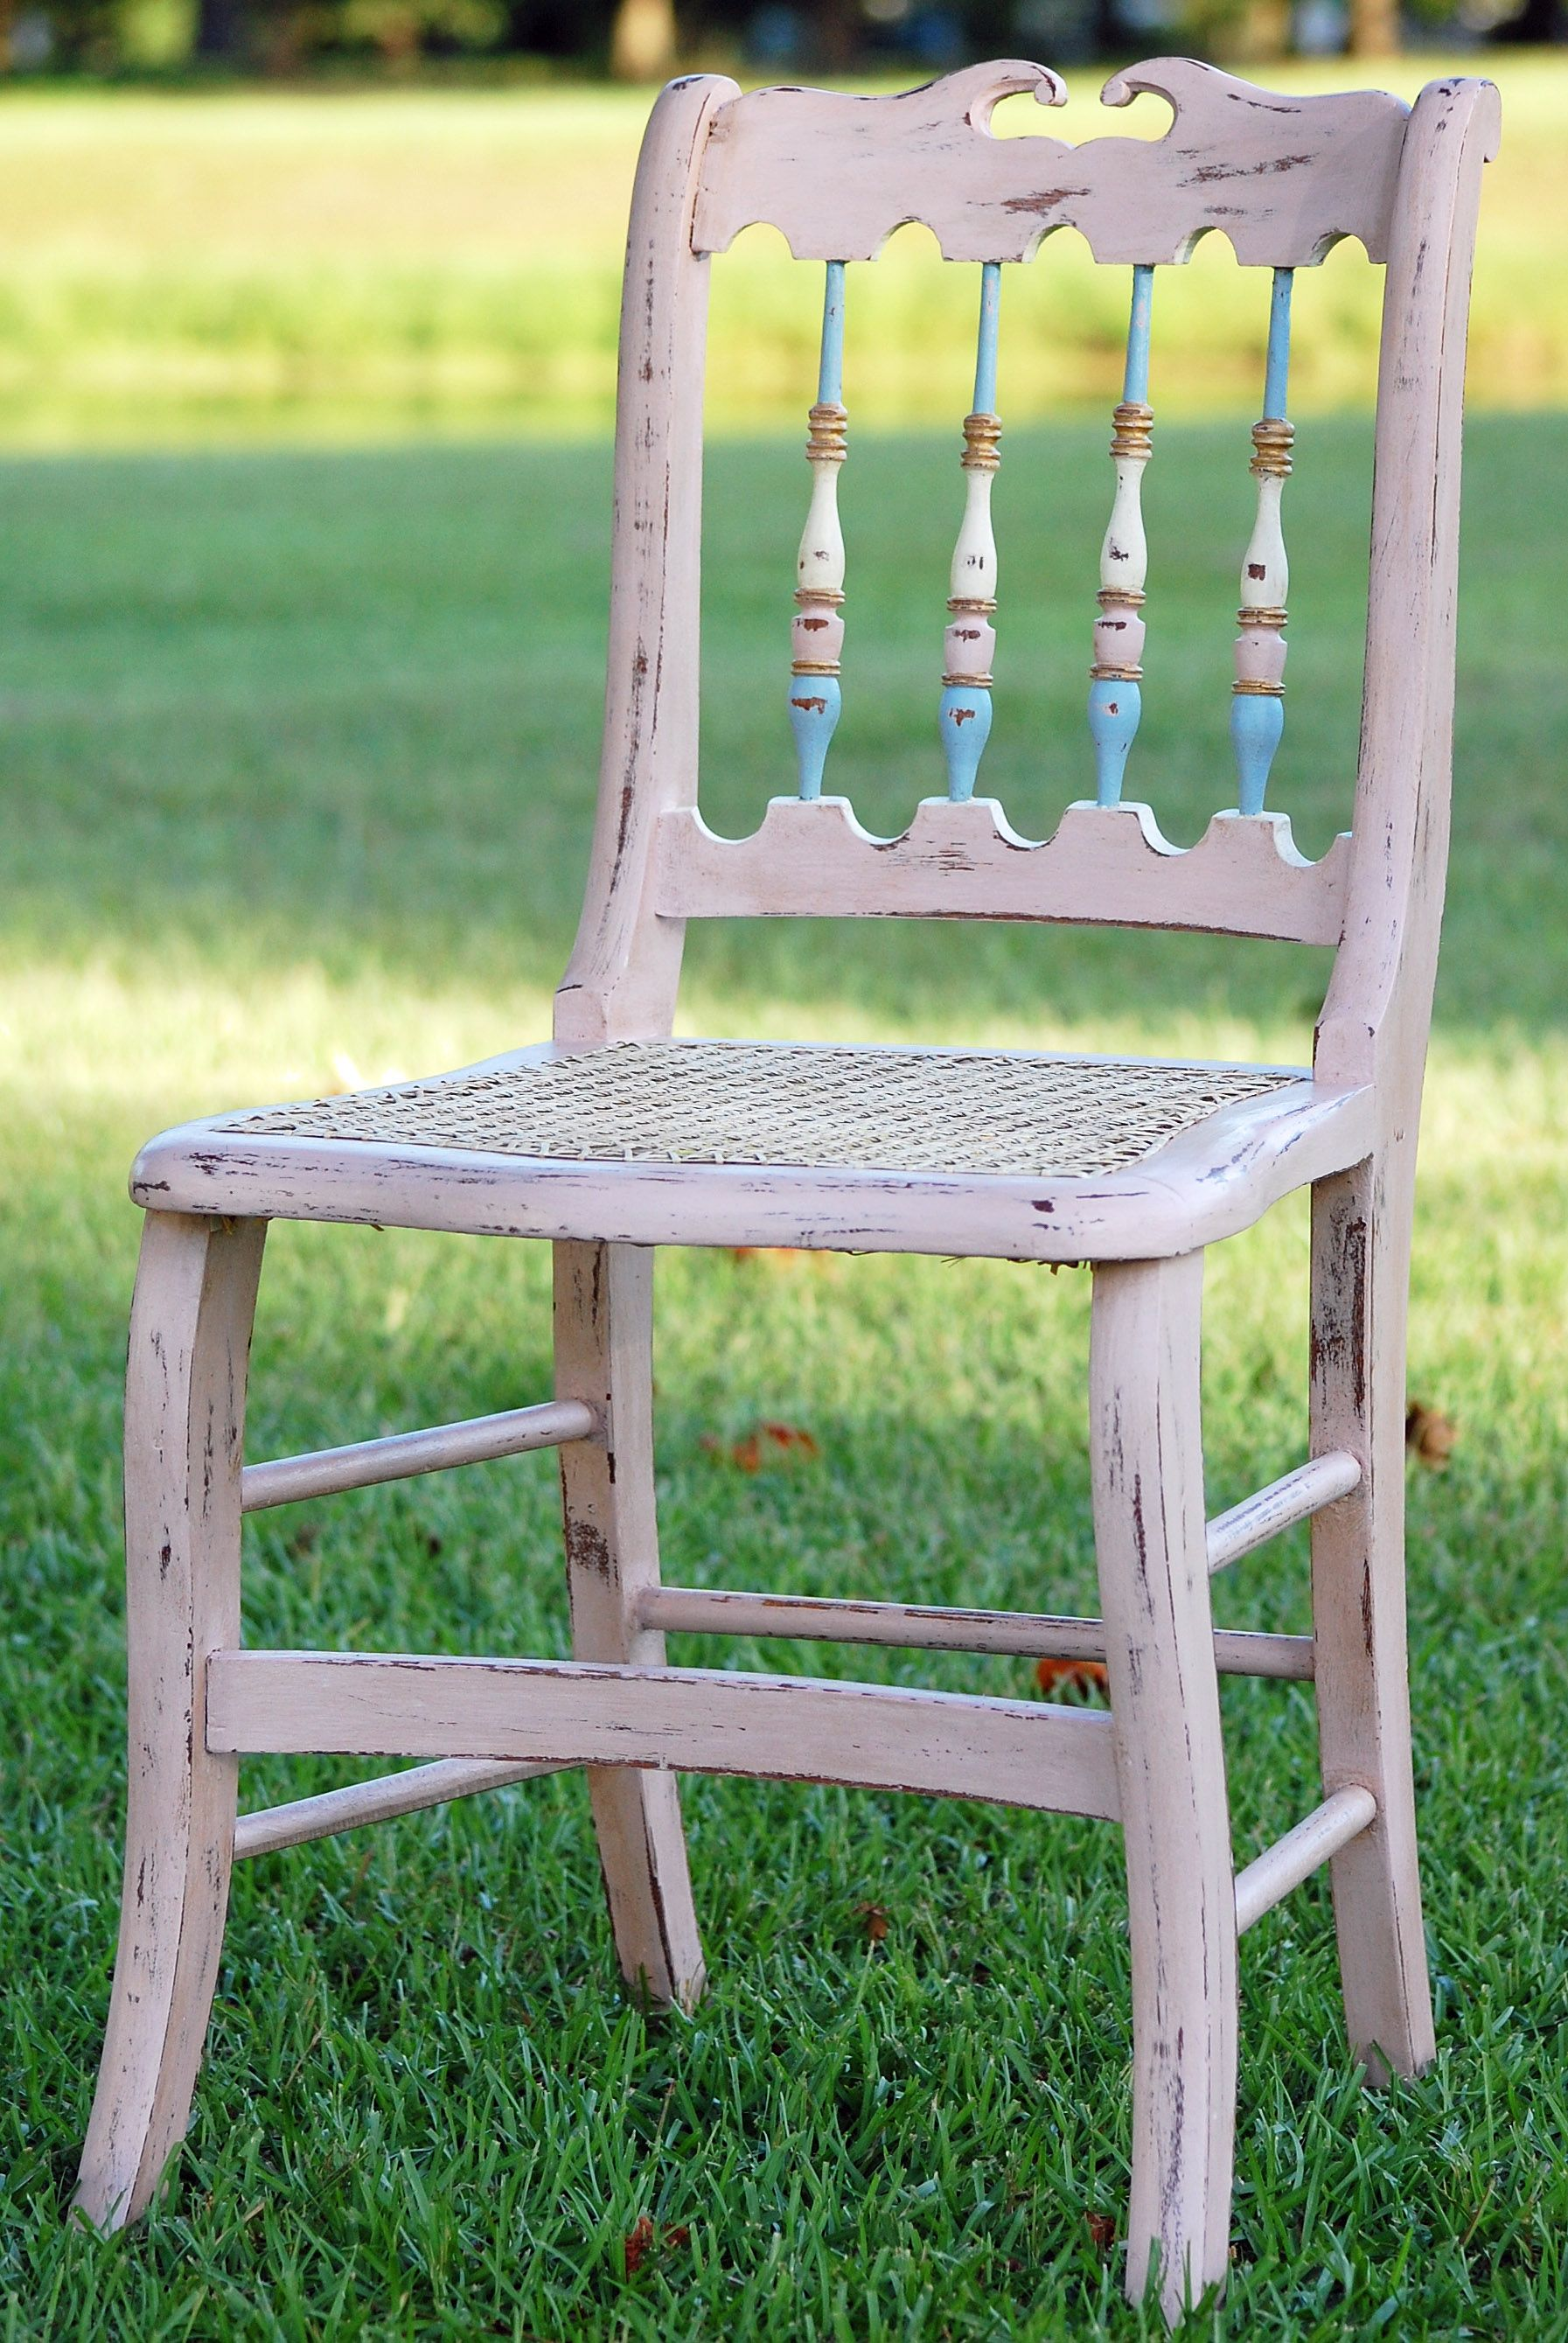 aunt priscilla has a rocking chair french dining chairs johannesburg pulled from the dump recaned painted with annie sloan